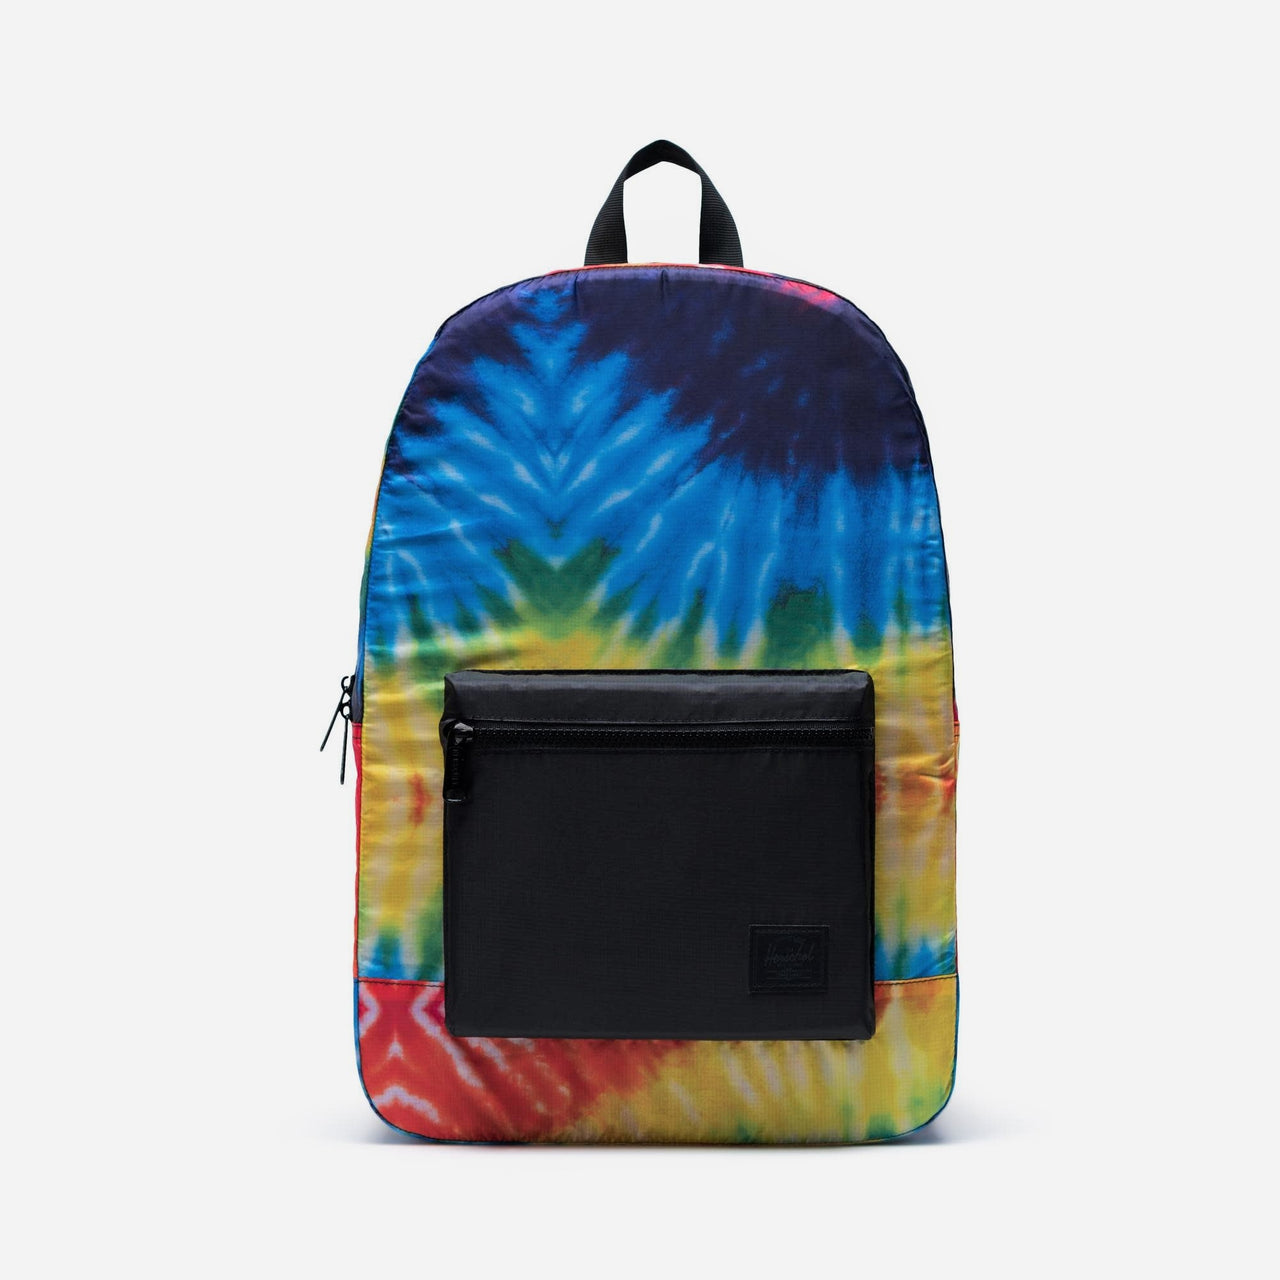 Packable Daypack - Rainbow Tie Dye